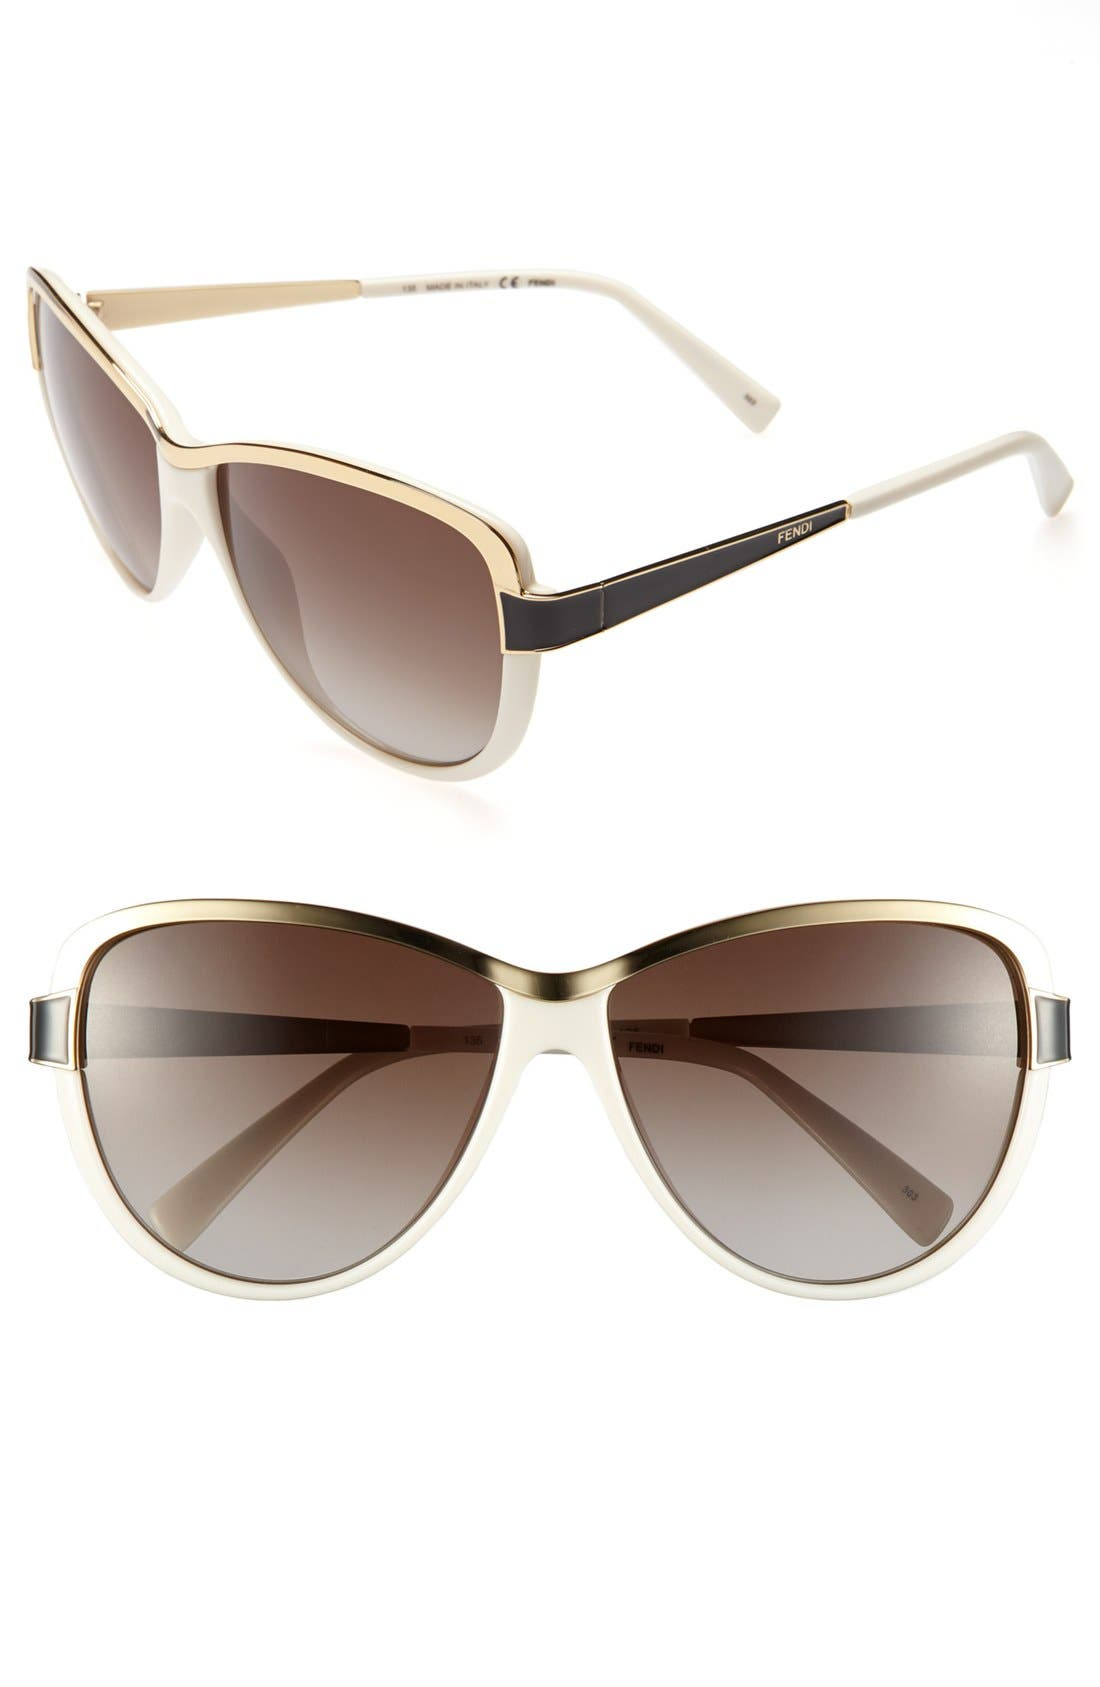 Alternate Image 1 Selected - Fendi 60mm Cat's Eye Sunglasses